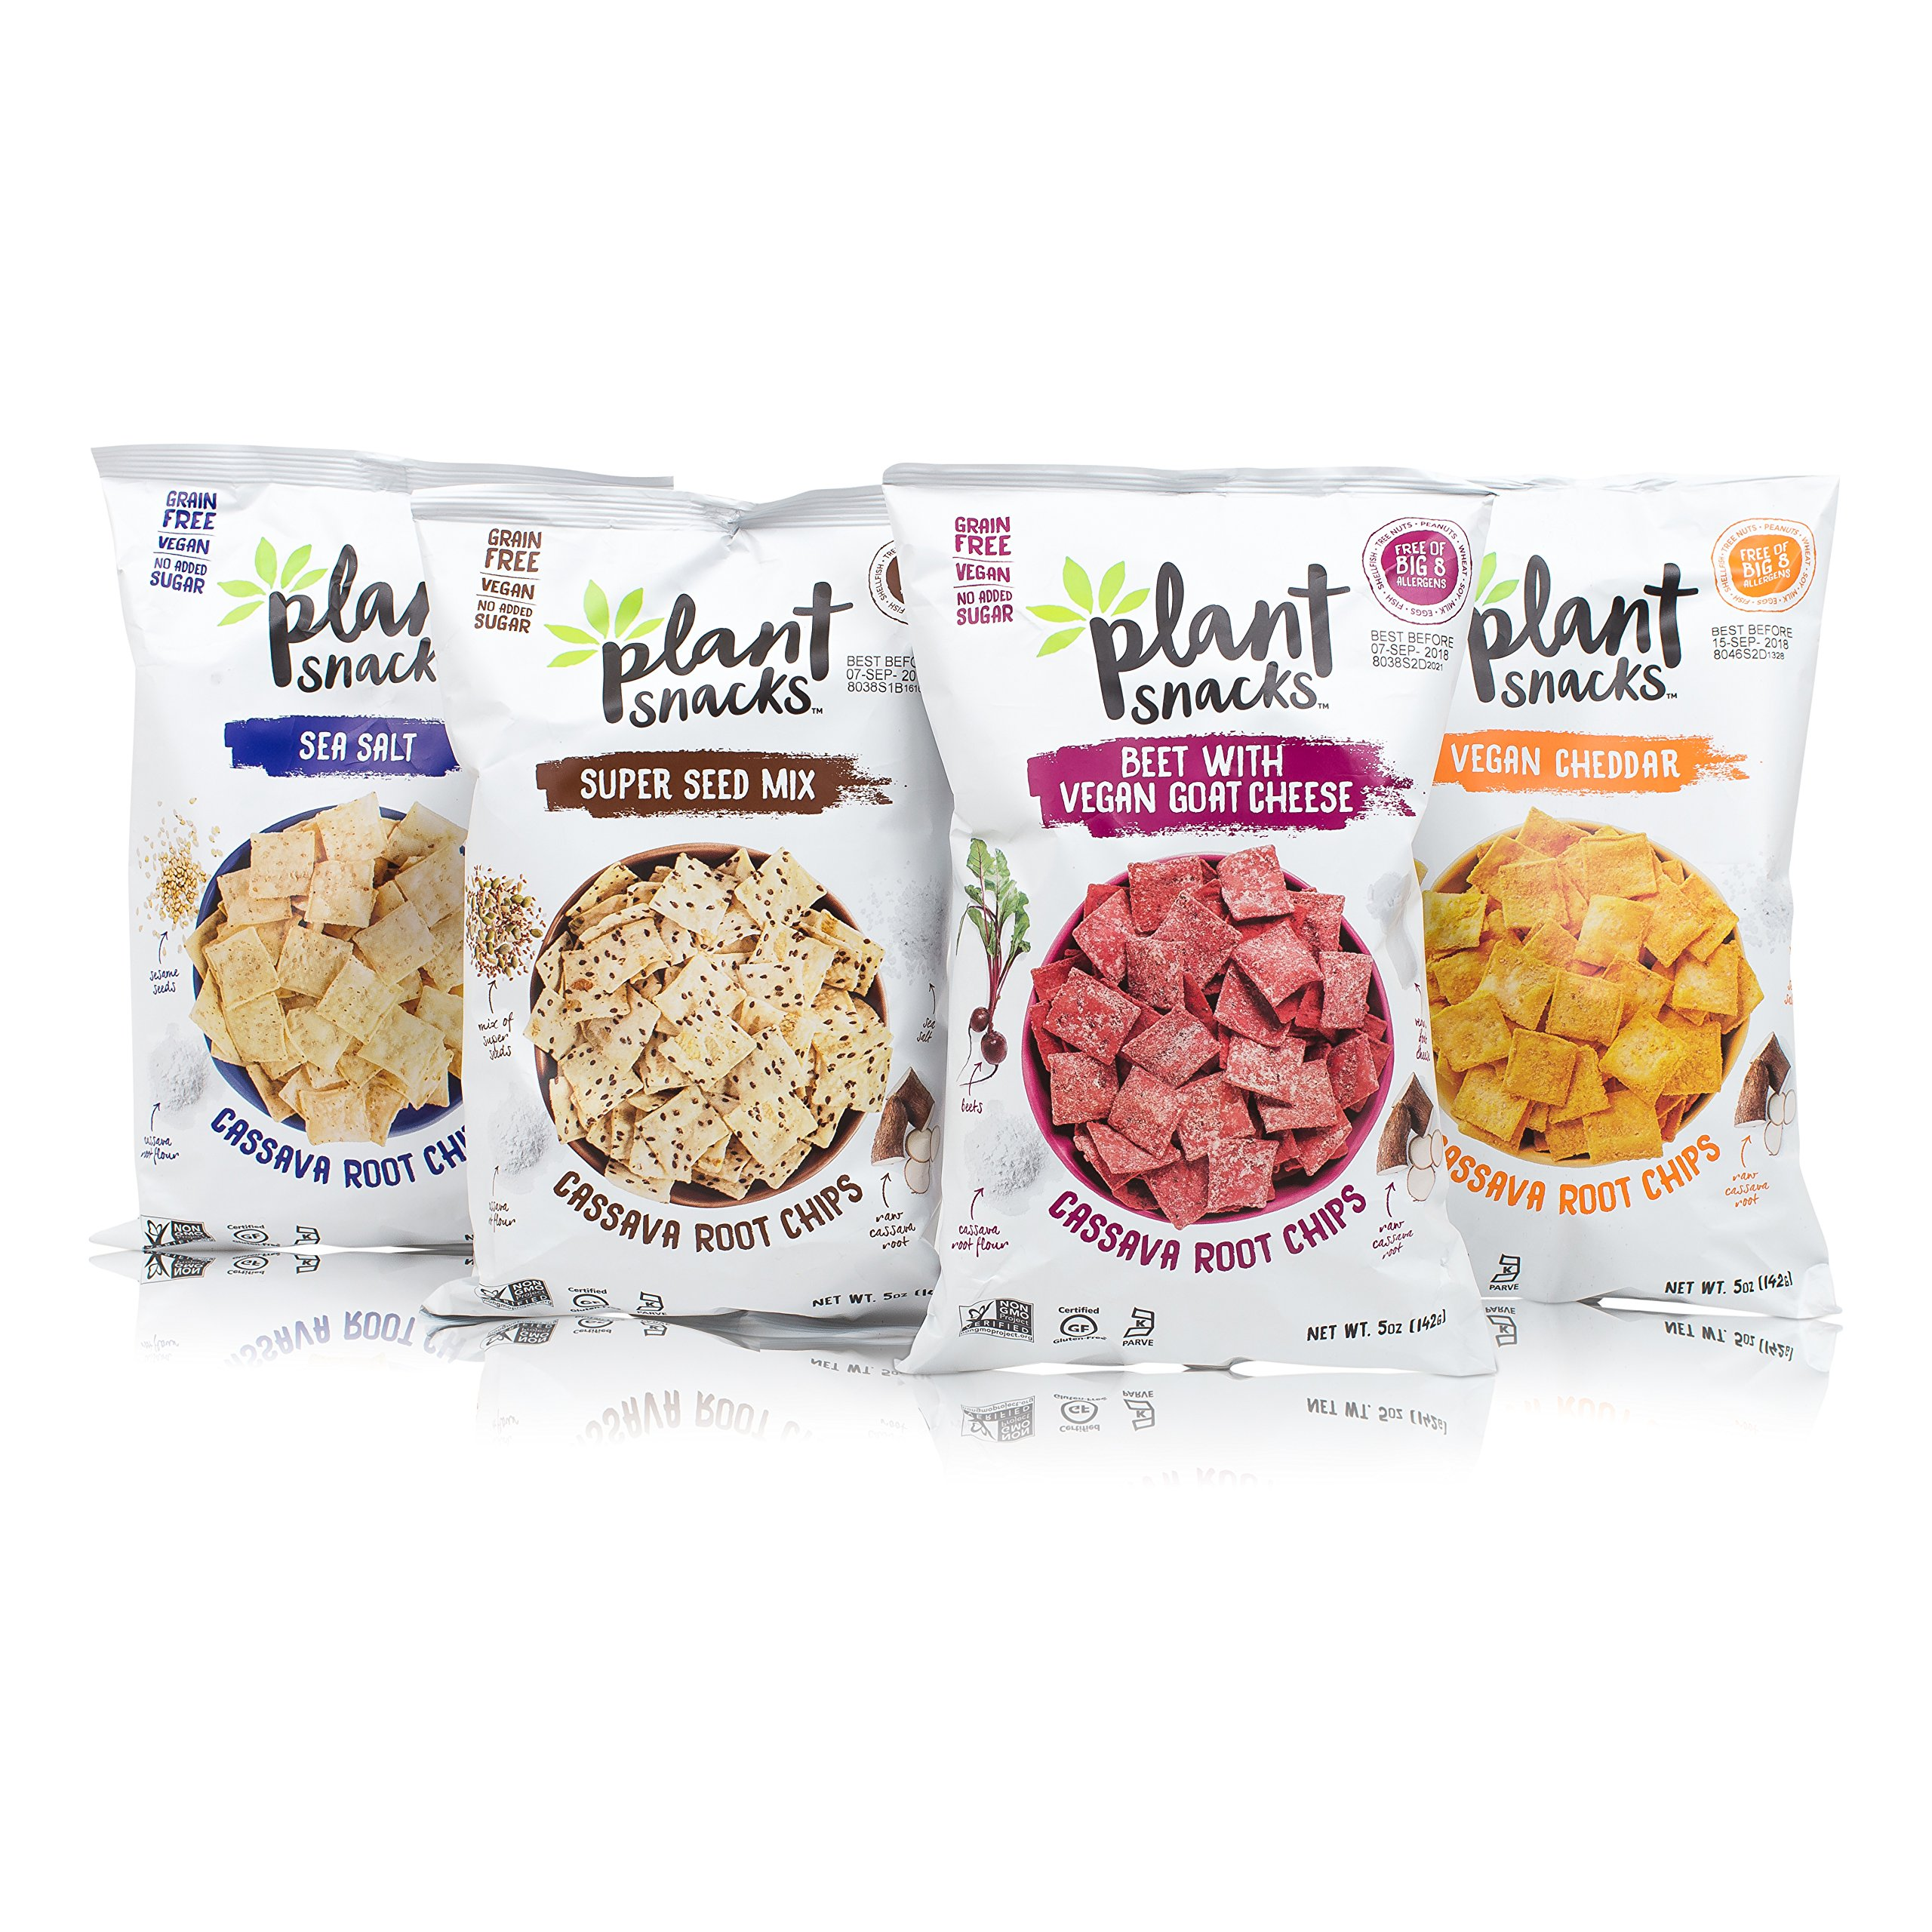 Plant Snacks Variety Pack - Cheddar, Sea Salt, Beet with Goat Cheese, Super Seeds Cassava Root Chips, Vegan, Big-8 Allergen Free, Non-GMO, Gluten Free, Grain Free, No Added Sugar, 5 oz Bags, Pack of 4